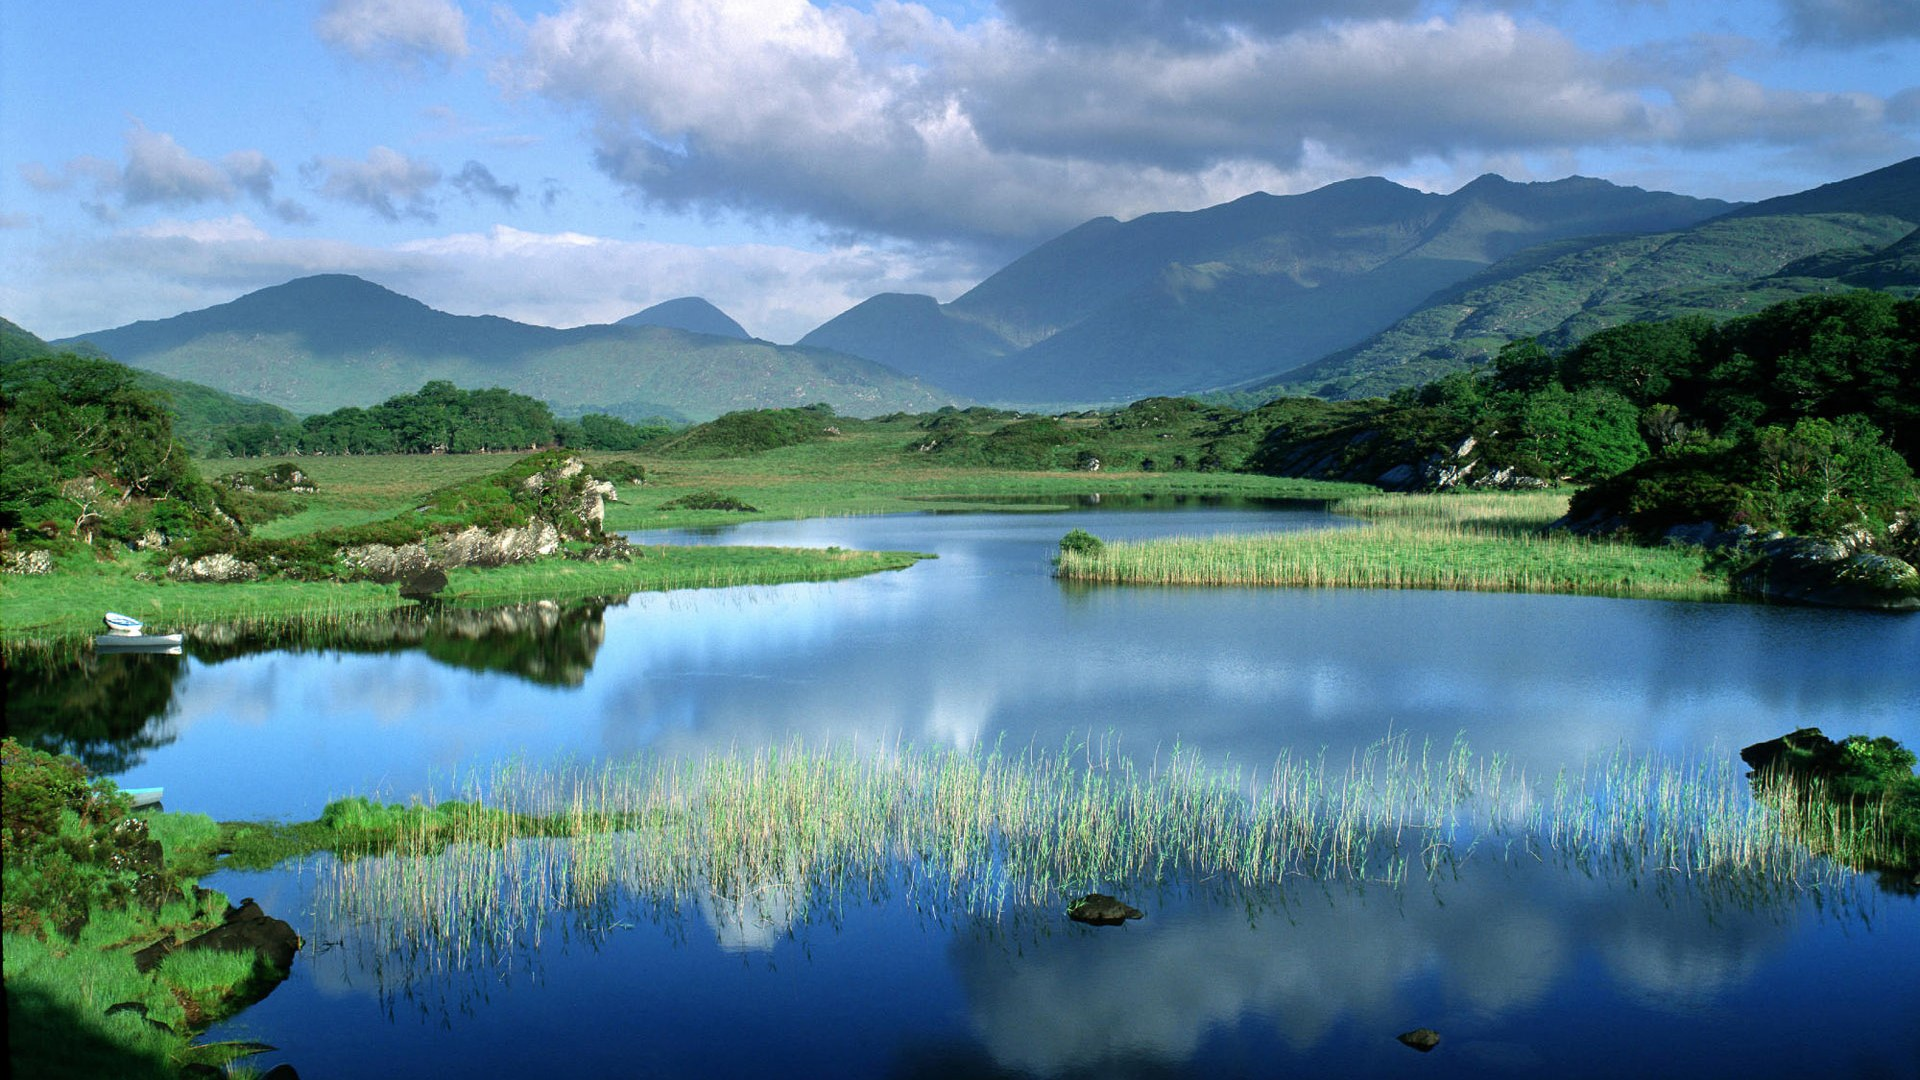 nature wallpaper full hd,natural landscape,nature,water resources,body of water,reflection